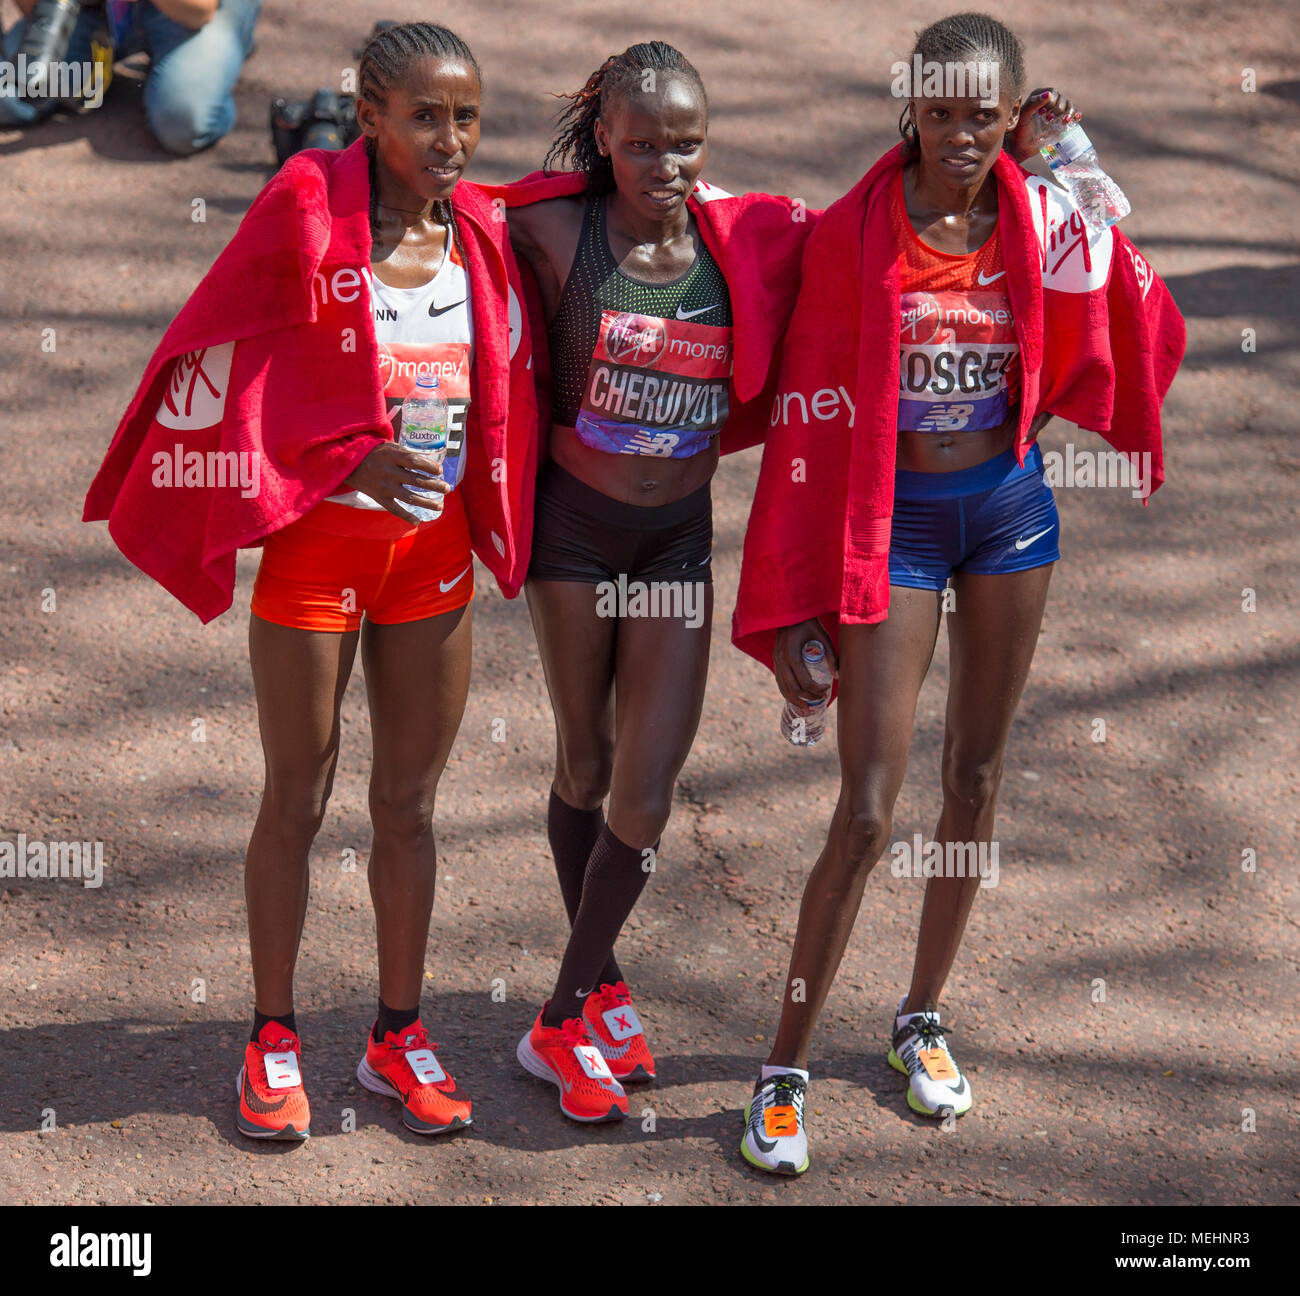 The Mall, London, UK. 22 April 2018. The Virgin Money London Marathon takes place in hot sun with athletes finishing on The Mall. Vivian Cheruiyot (KEN) wins the Elite Women's race, here with Brigid Kosgei (KEN) and Tadelech Bekele (ETH). Credit: Malcolm Park/Alamy Live News. Stock Photo